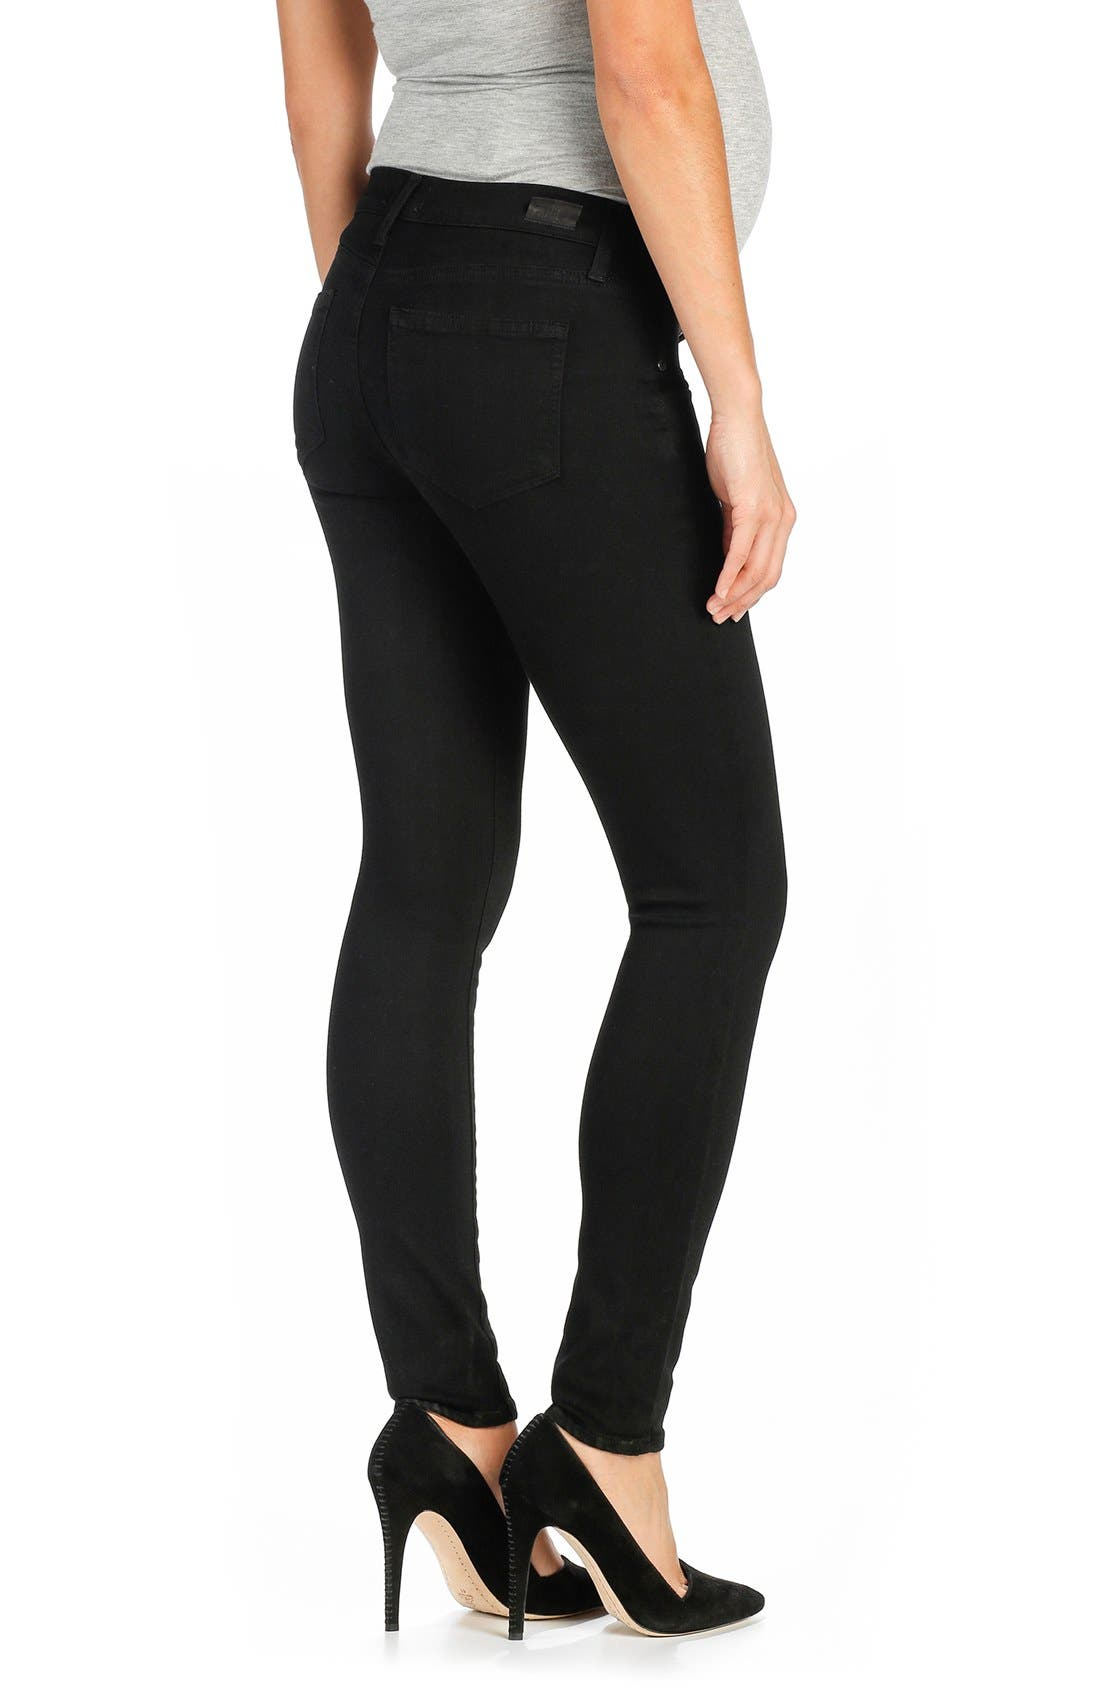 'Transcend - Verdugo Ultra Skinny Maternity Jeans,                             Alternate thumbnail 10, color,                             BLACK SHADOW